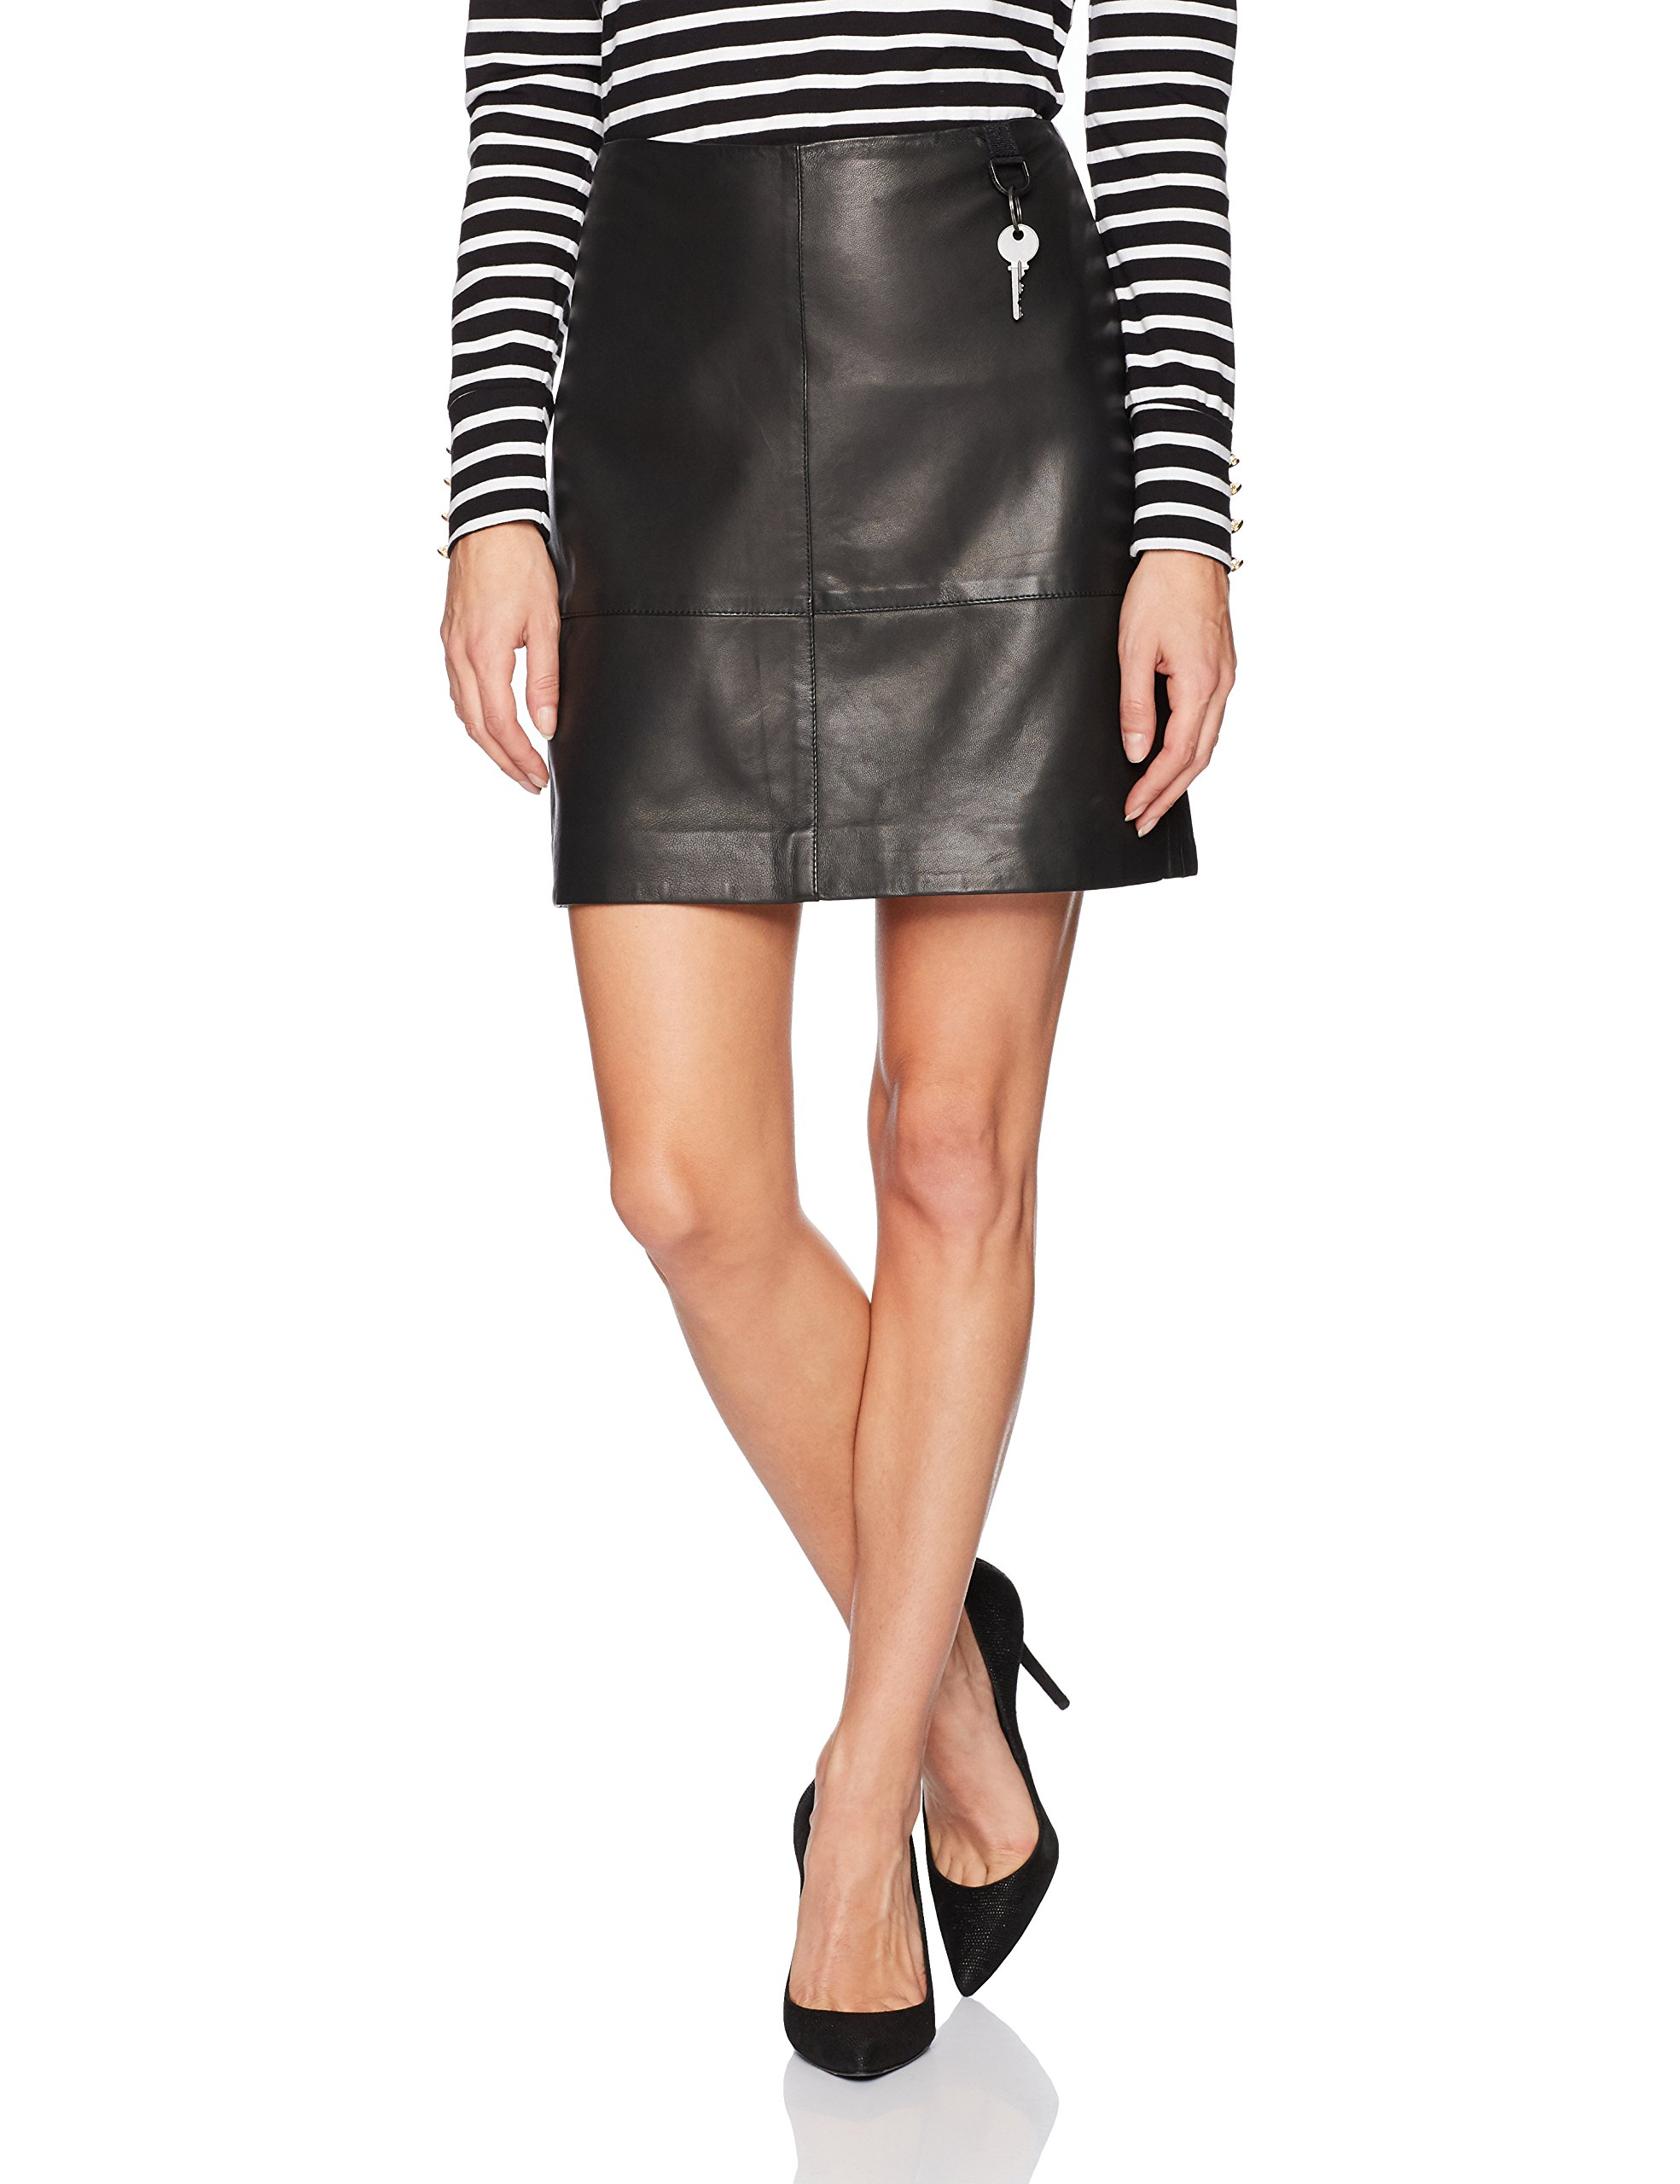 Kenneth Cole Women's Leather Seamed Mini-Skirt, Black, S